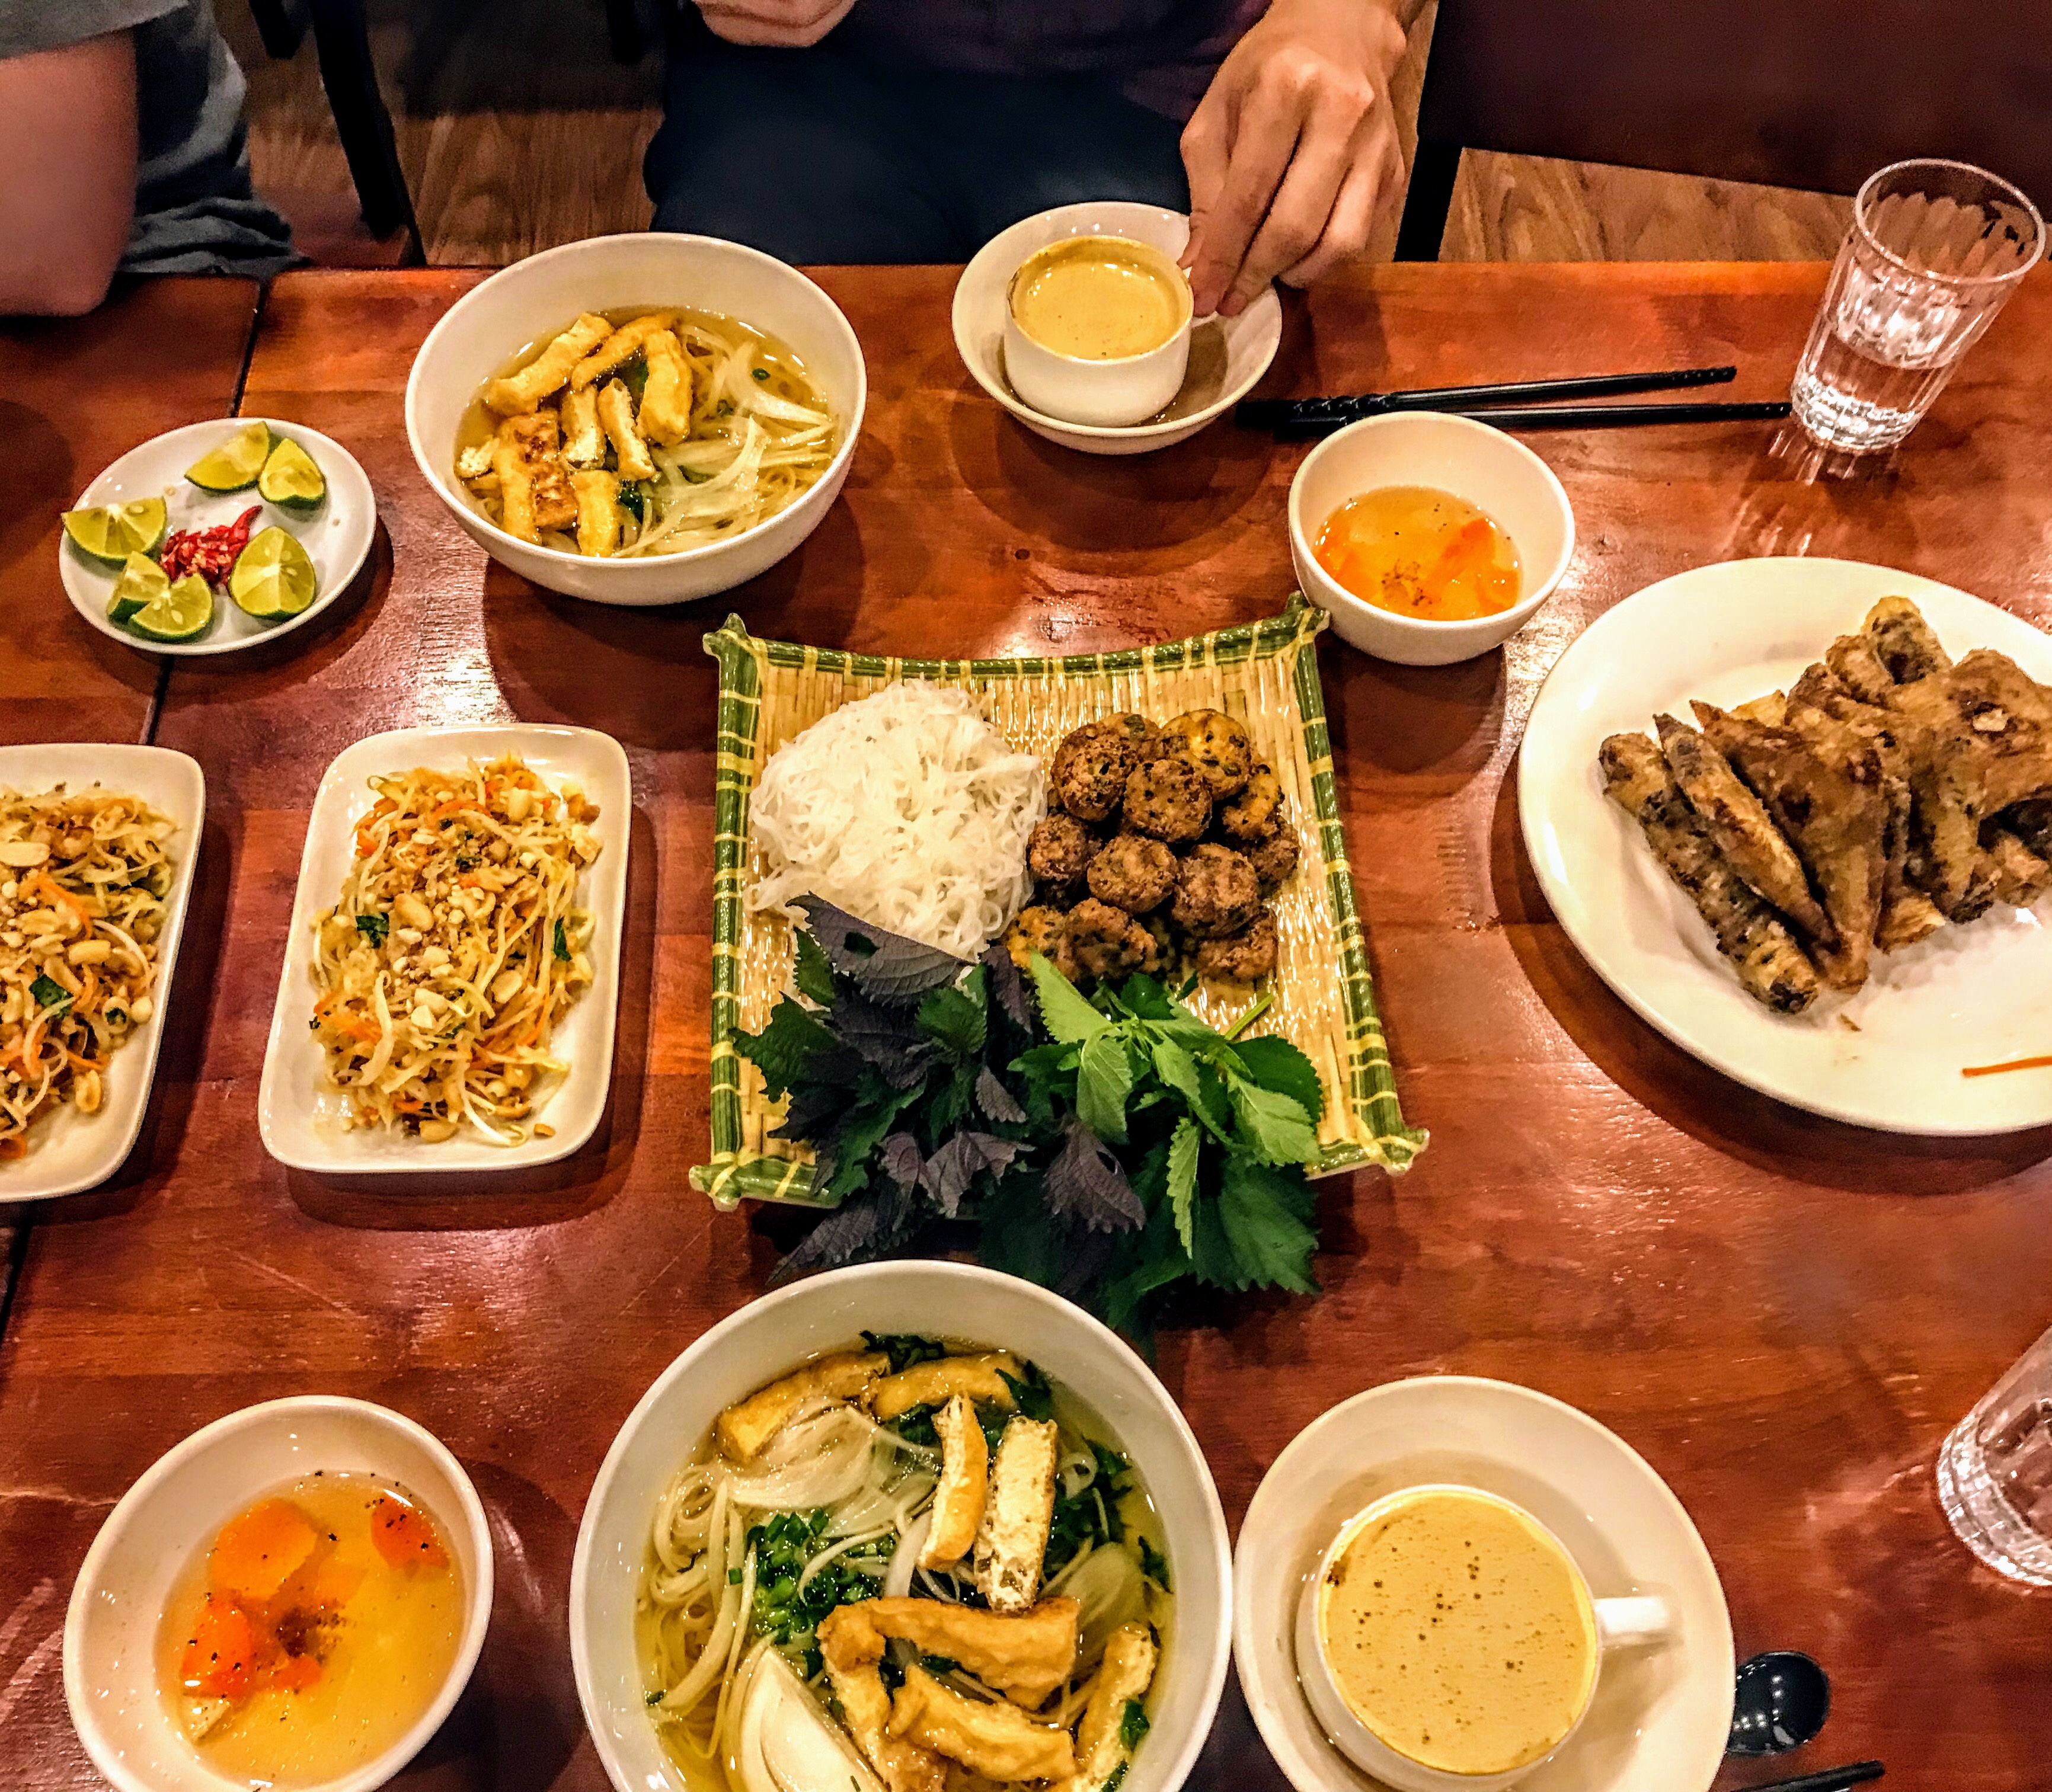 Vietnamese meal at a cooking class, Hanoi